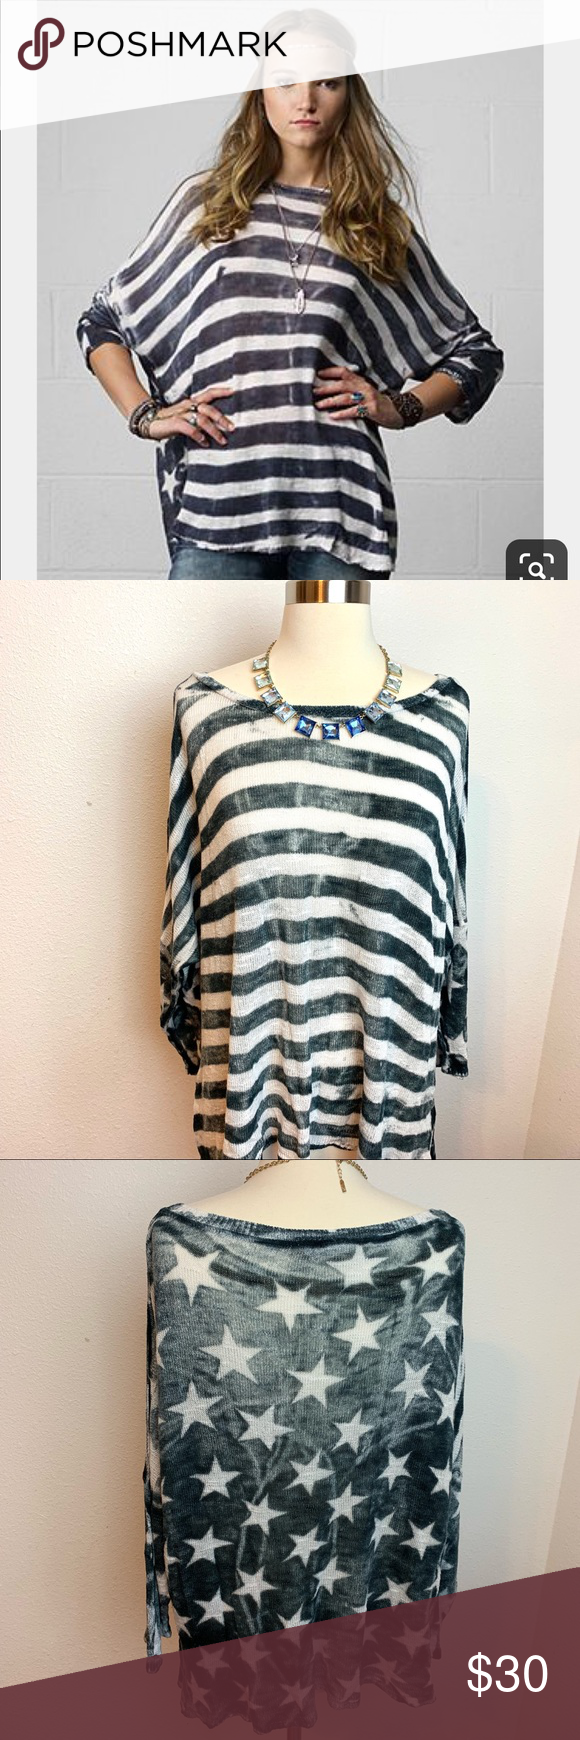 Denim & Supply Ralph Lauren Stars Stripes Top SzM Denim & Supply Ralph Lauren Stars Stripes Top Size Medium, Gray and White. In great condition, light weight, knit like fabric.  🌼Offers Always Welcomed  🌼Smoke free home 🌼Bundle and save 15%  Tags: boho fall festival concert bands concert tee   04092019 Denim & Supply Ralph Lauren Sweaters